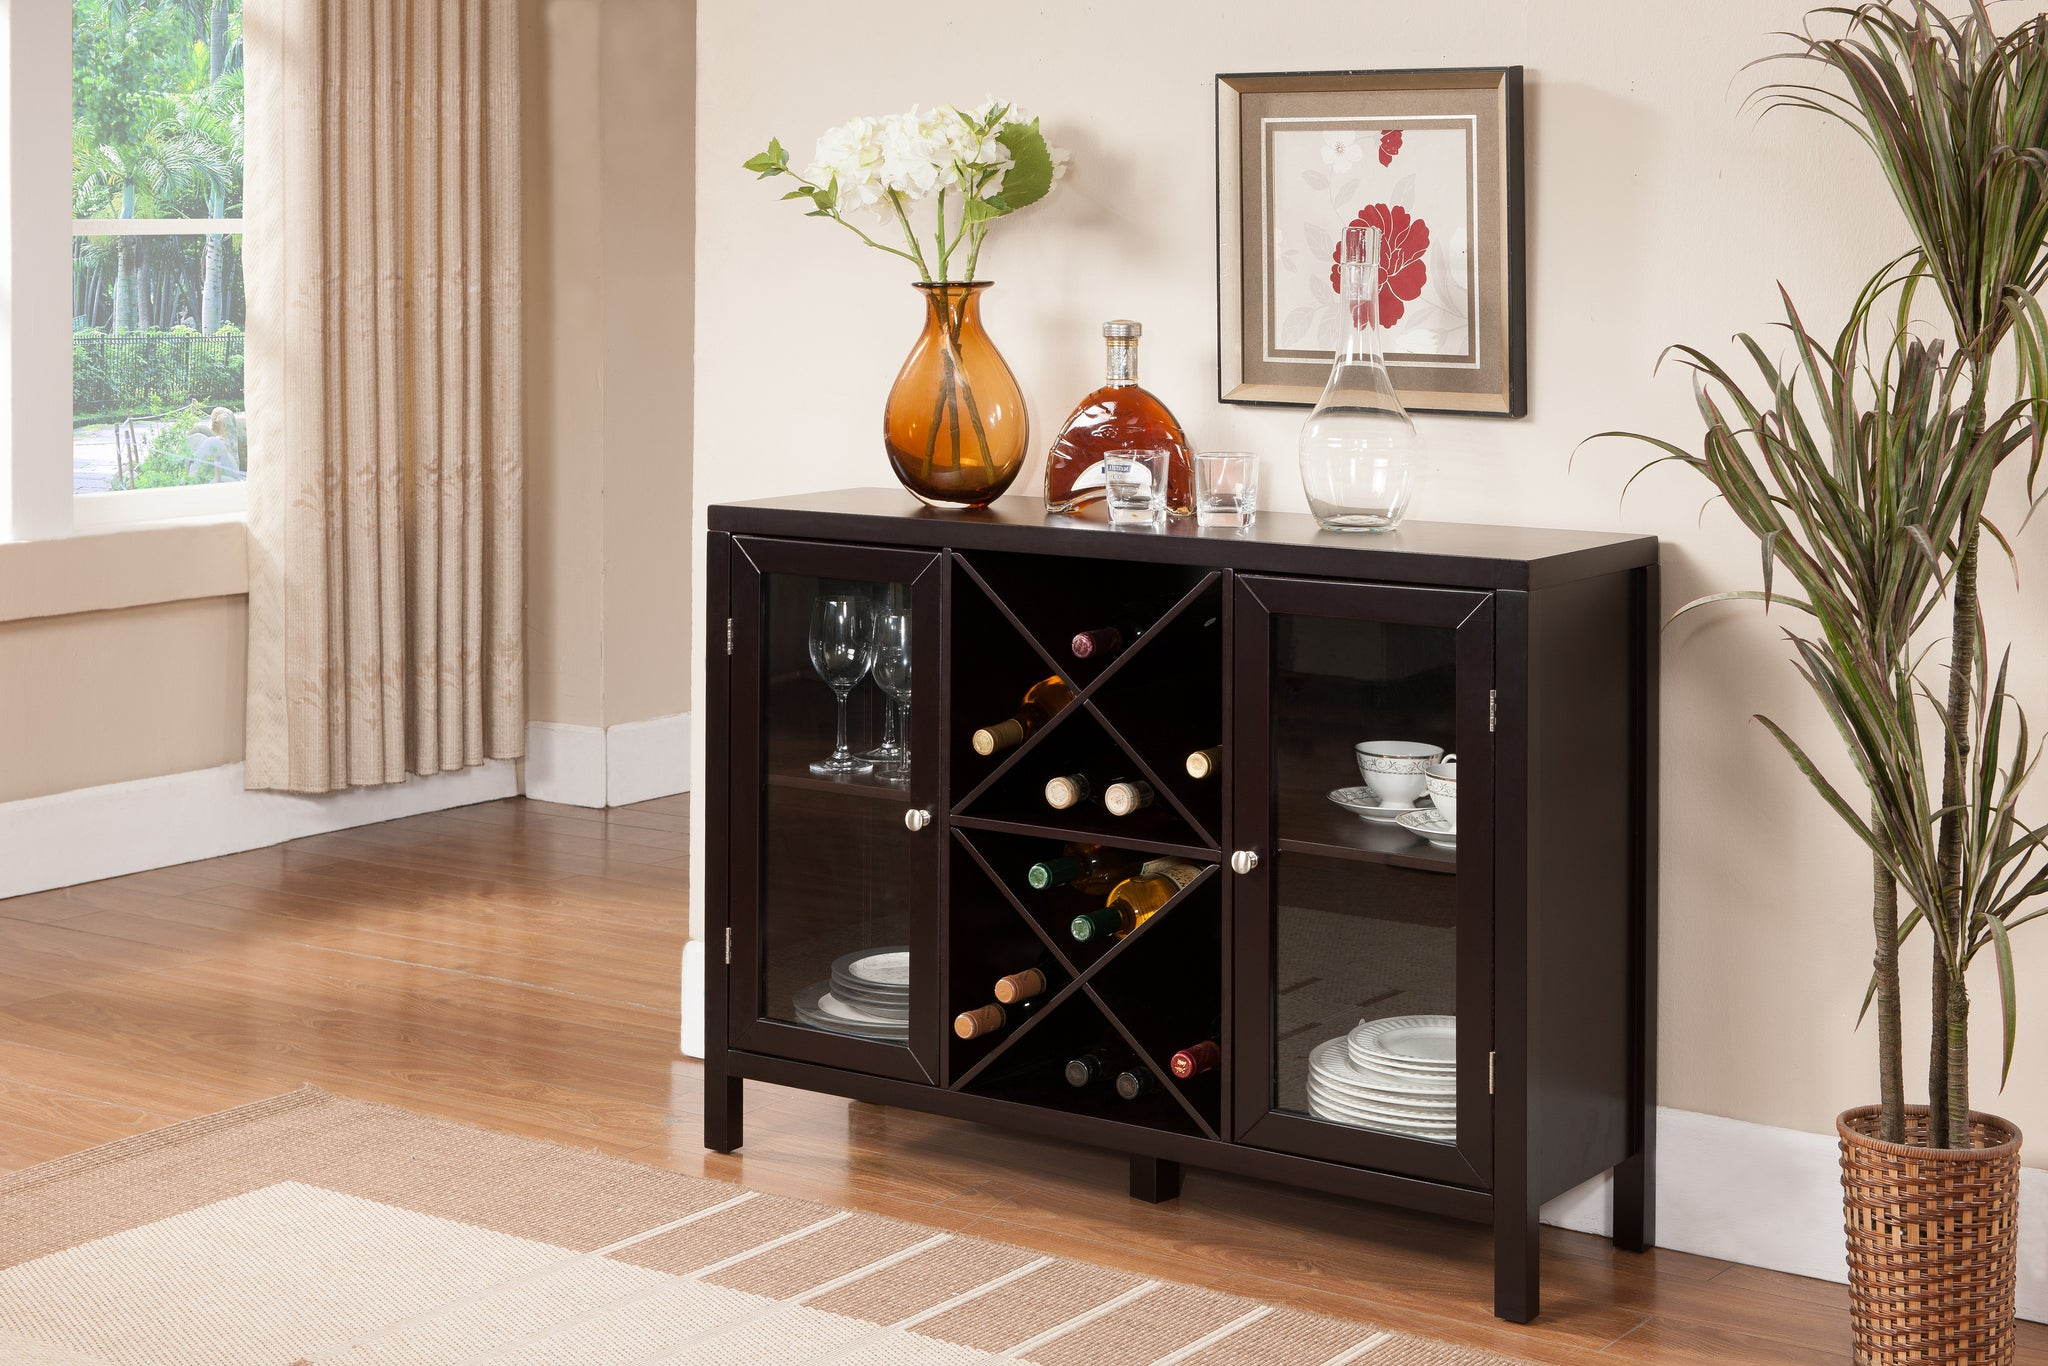 wine rack console table. Espresso Wood Wine Rack Breakfront Sideboard Display Console Table With Glass Storage Doors